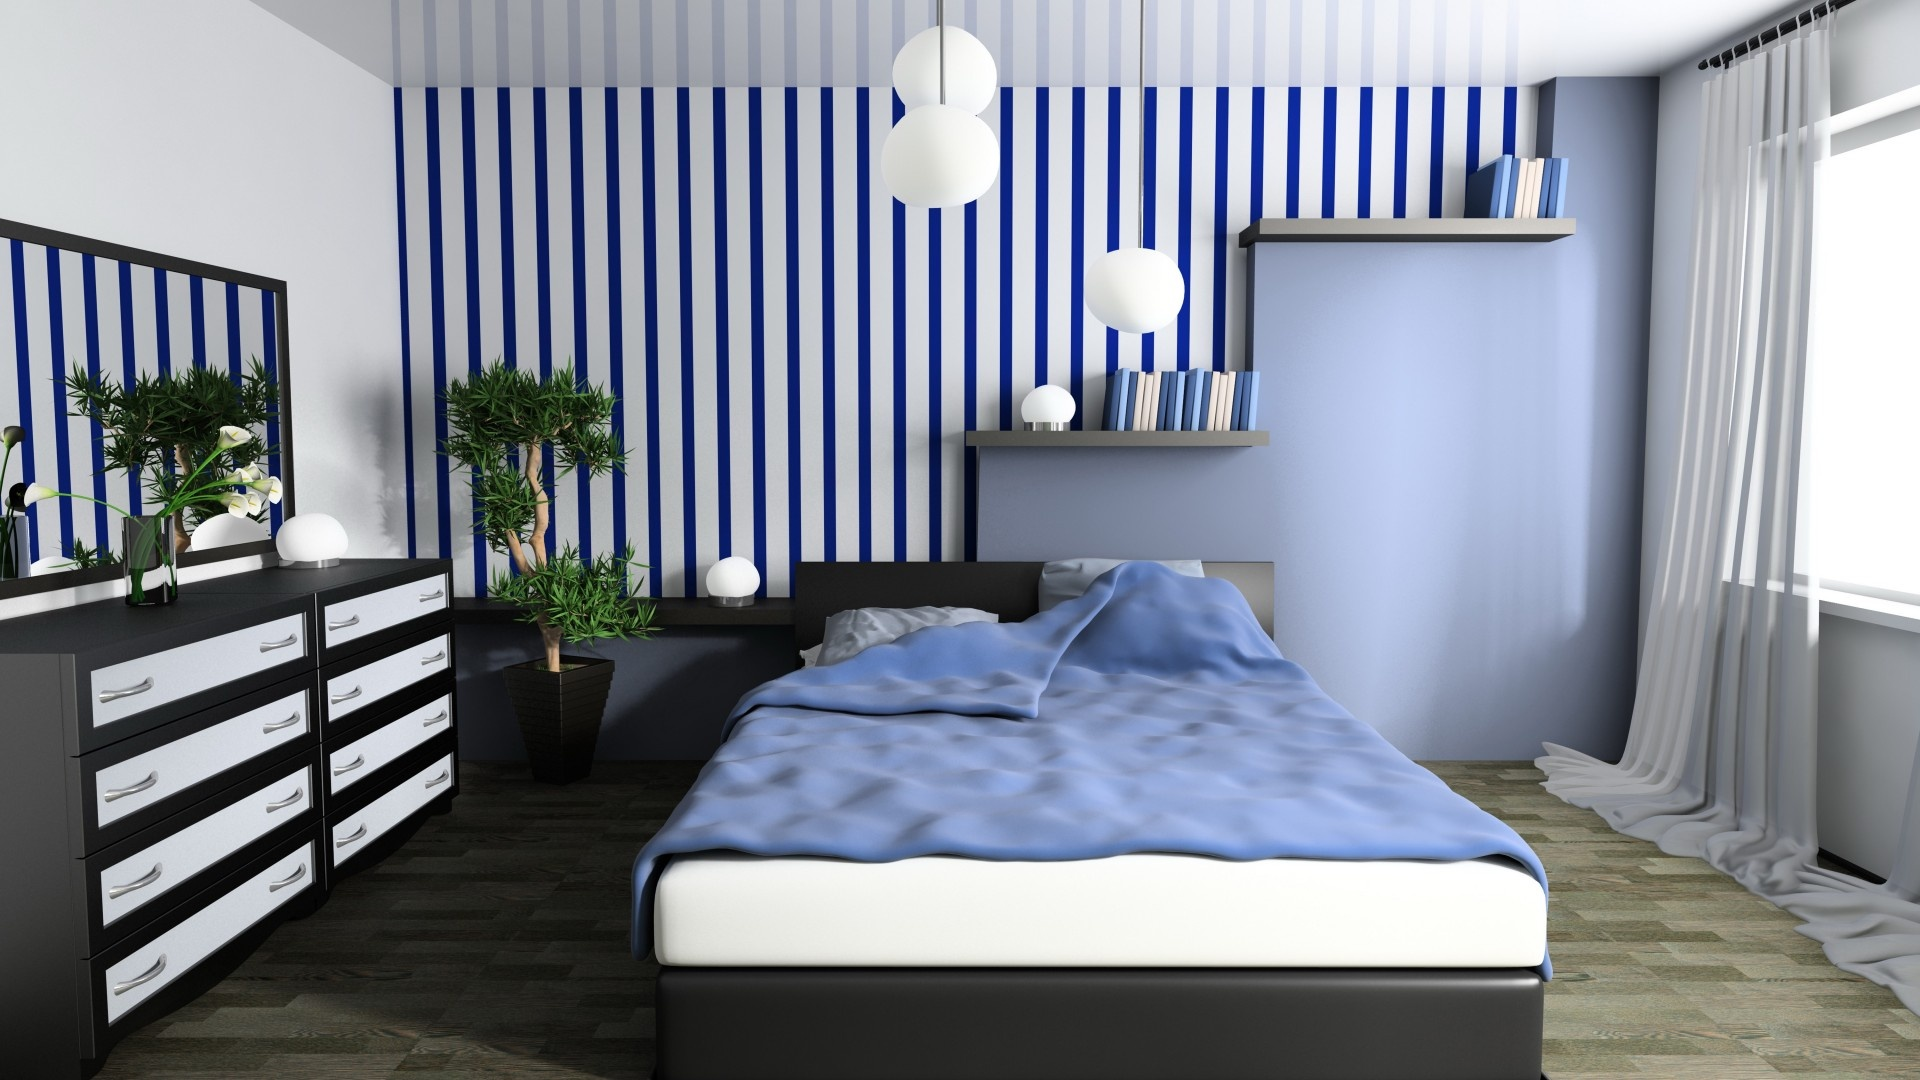 Fabulous Blue Bedroom Interior Design 1920 x 1080 · 440 kB · jpeg